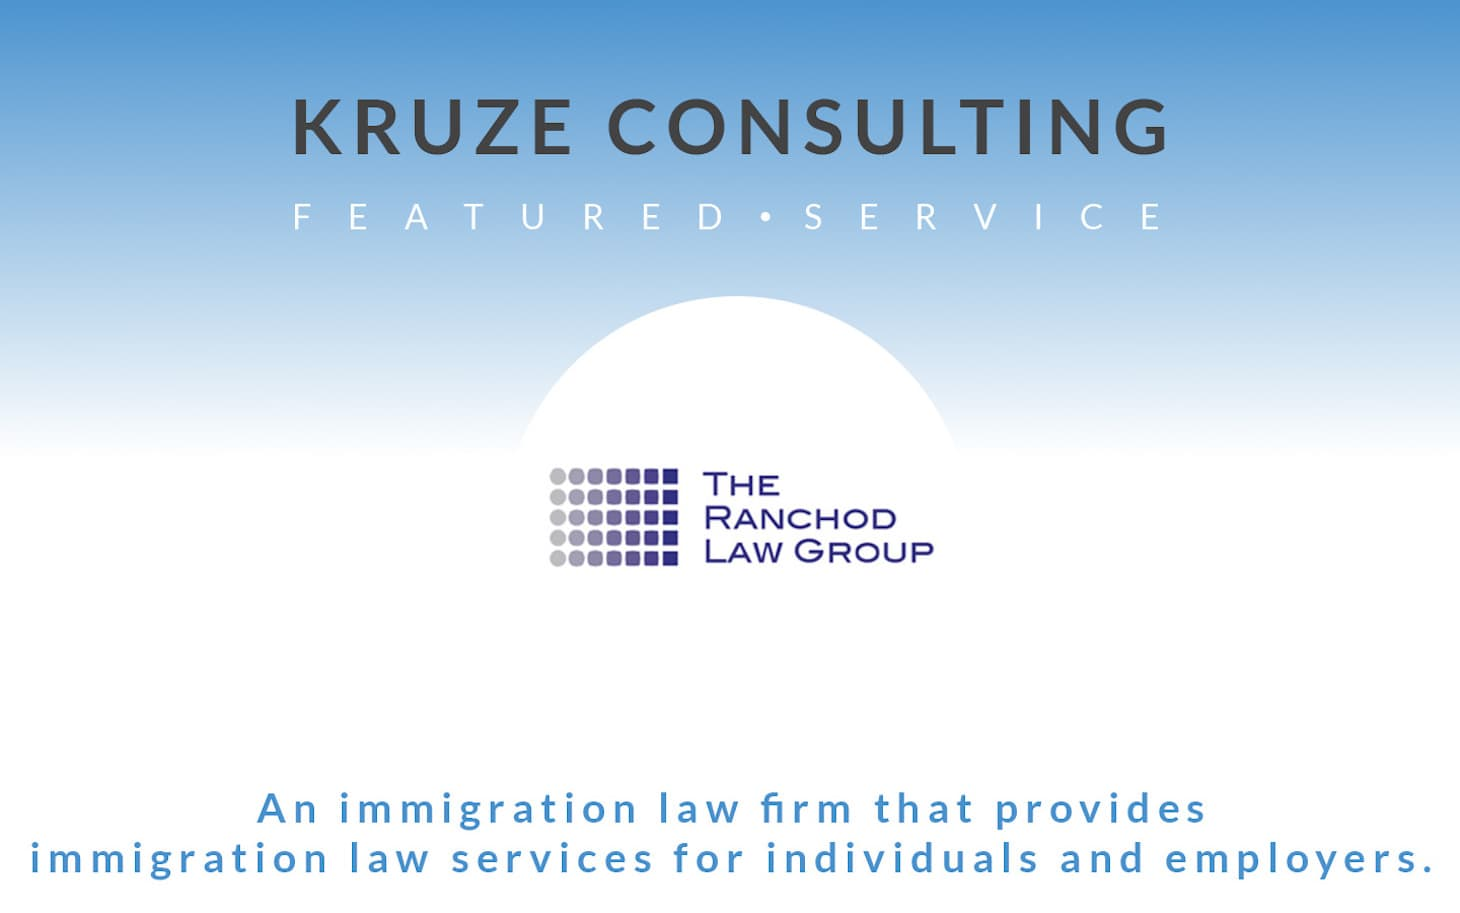 Featured Service - Ranchod Law Group